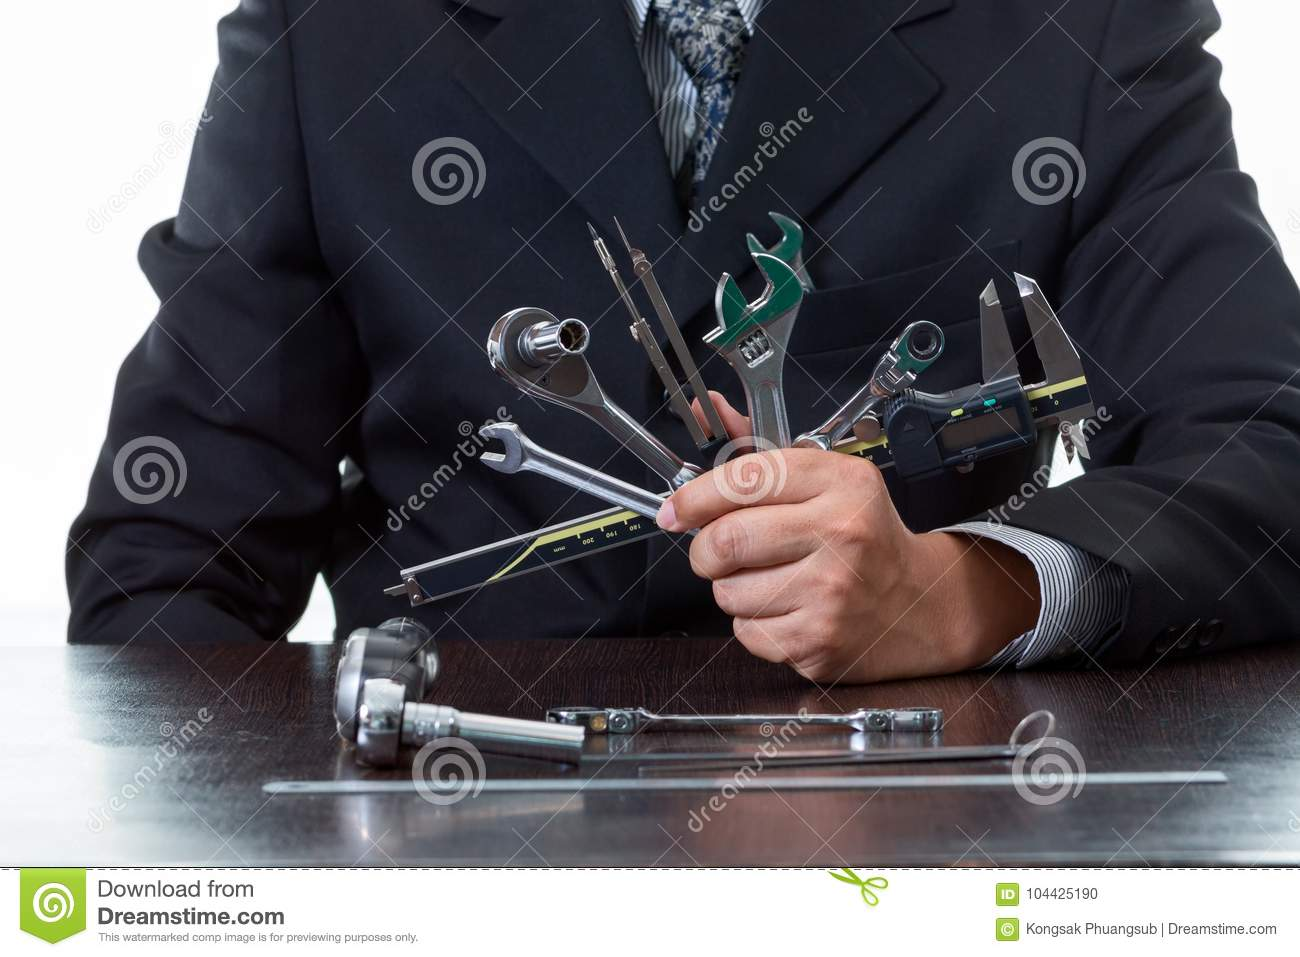 Tools and mechanical engineer working by holding many kind of tooling